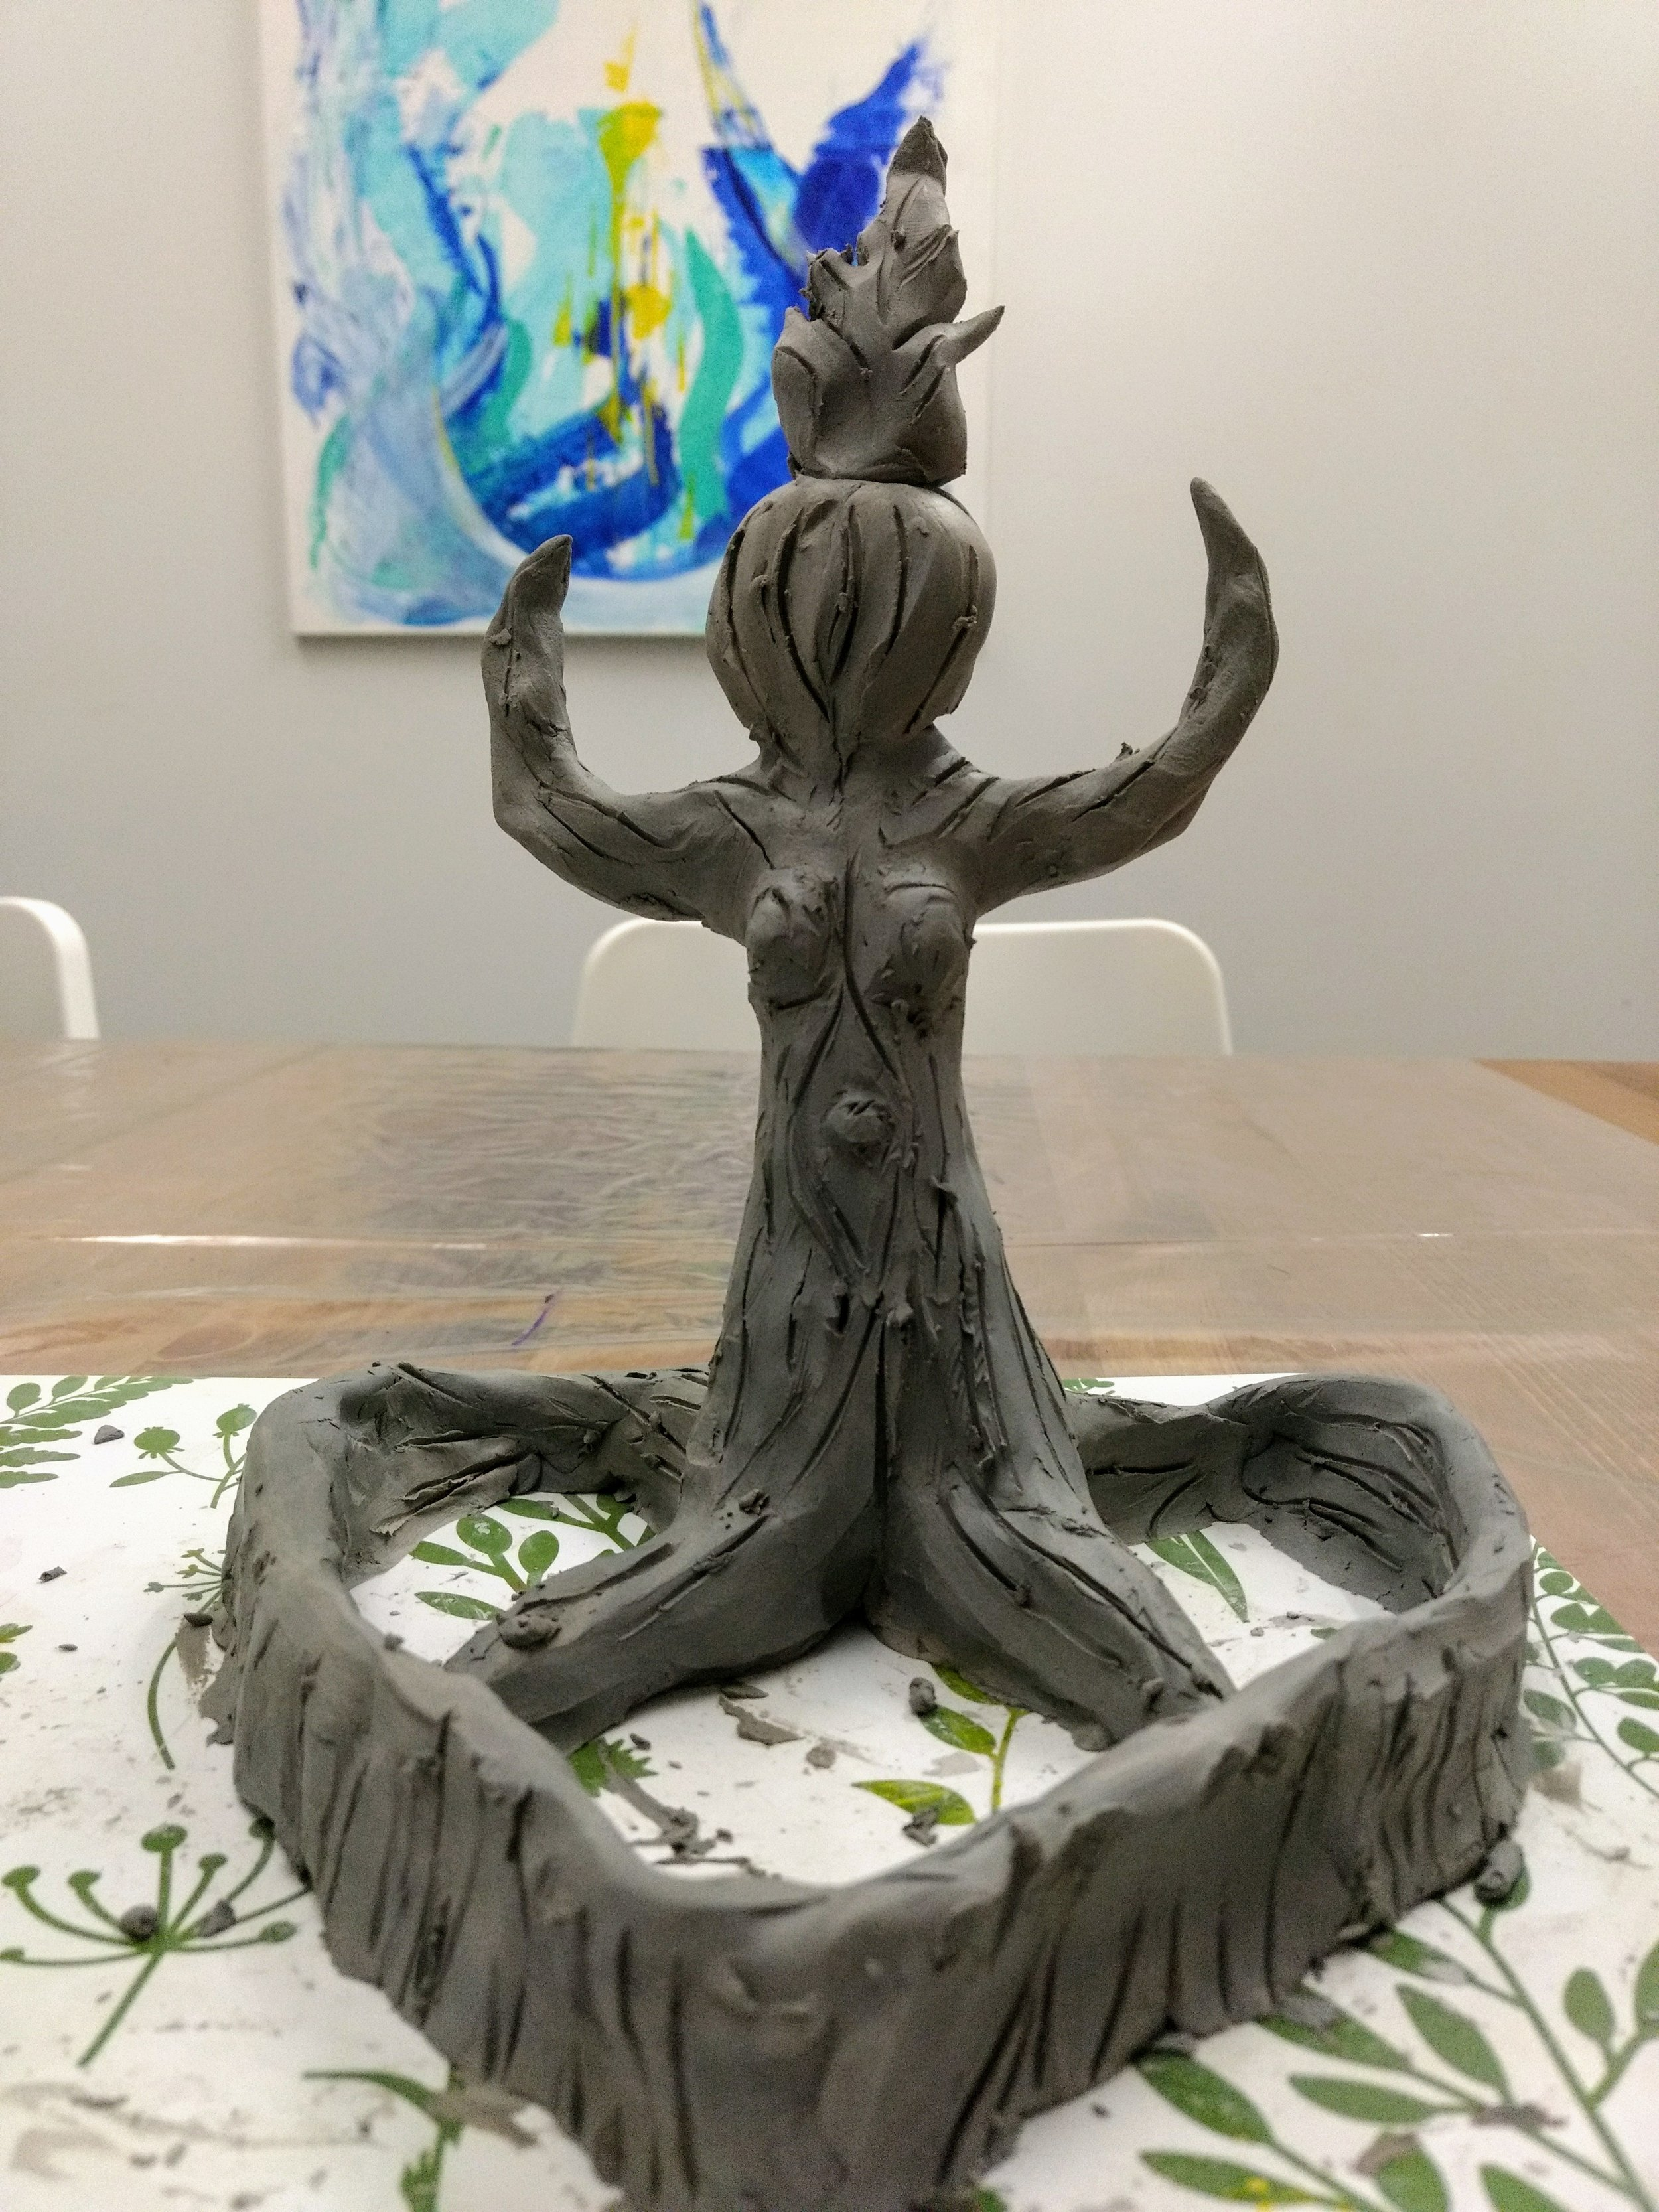 Sculpture created by Lacey Ford, Art Therapist & Co-Founder of Full Circle- Art Therapy Centre